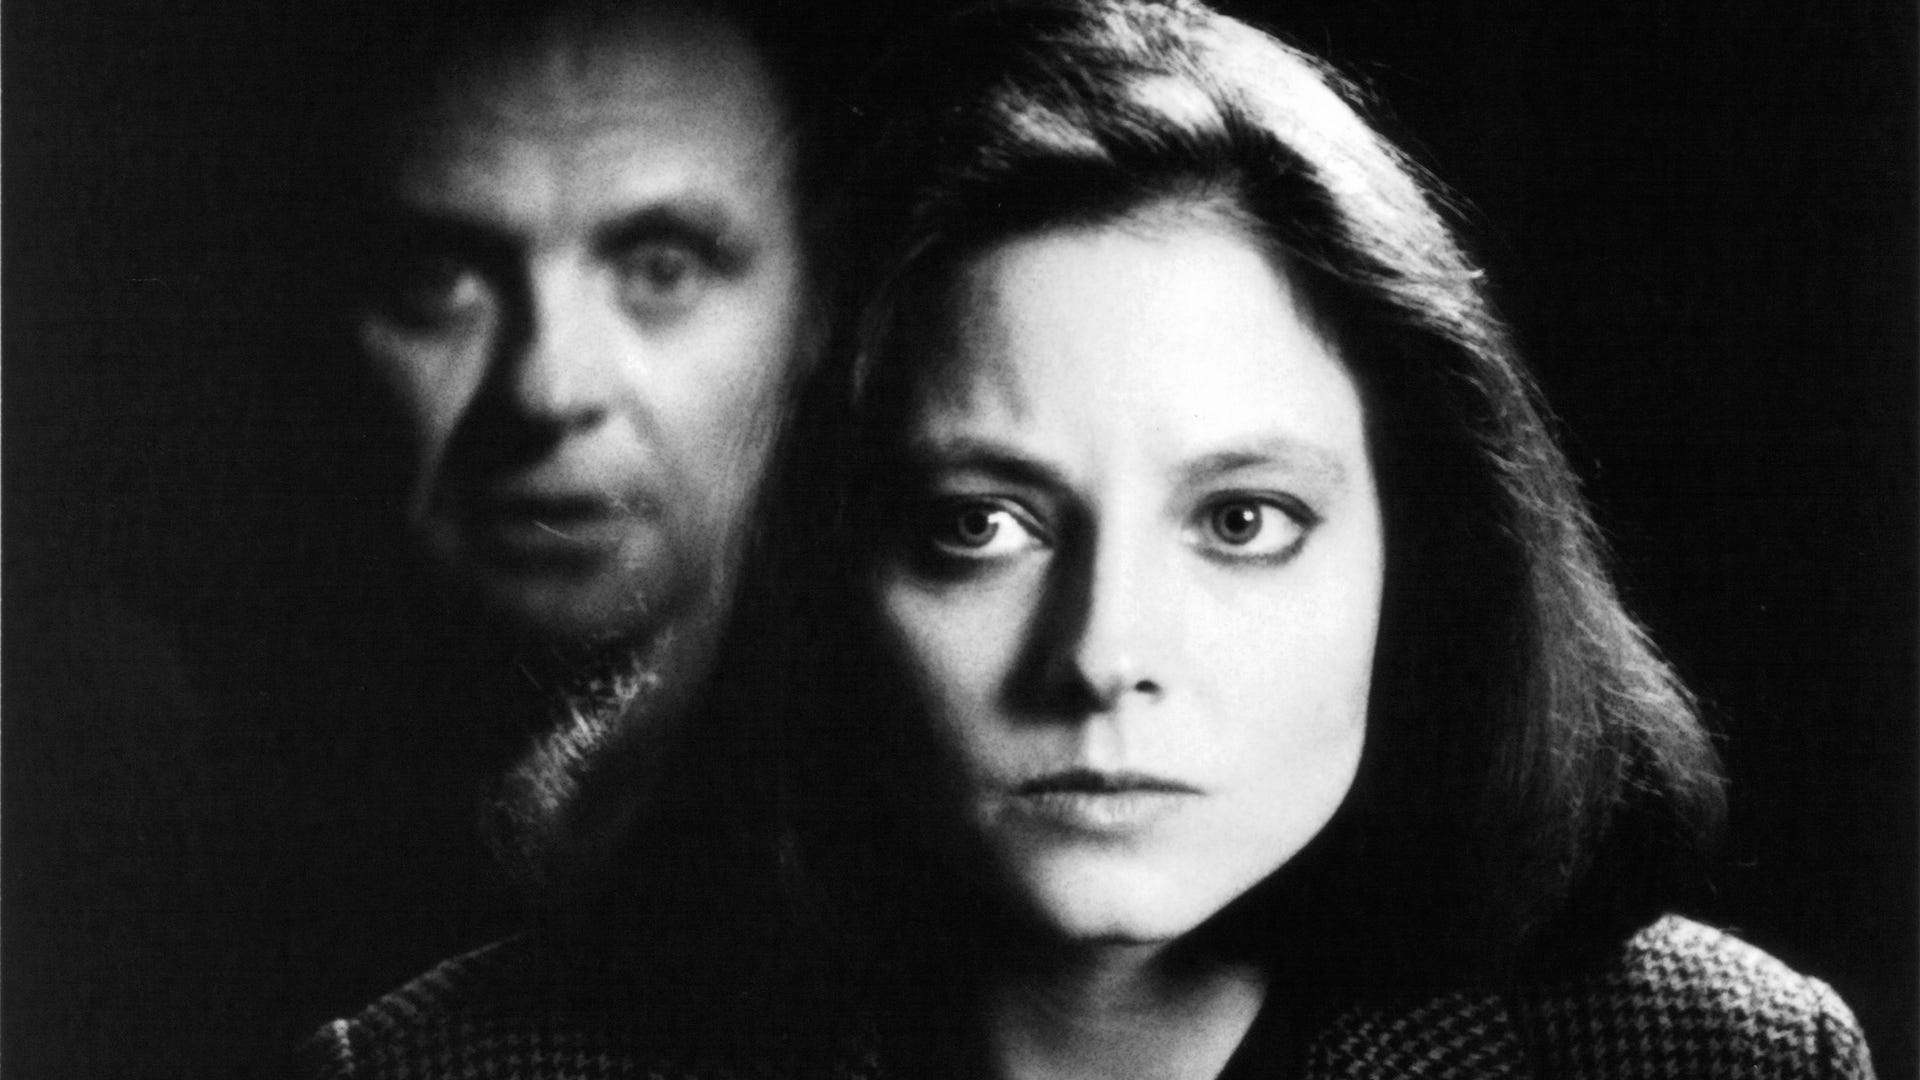 Anthony Hopkins and Jodie Foster, Silence of the Lambs